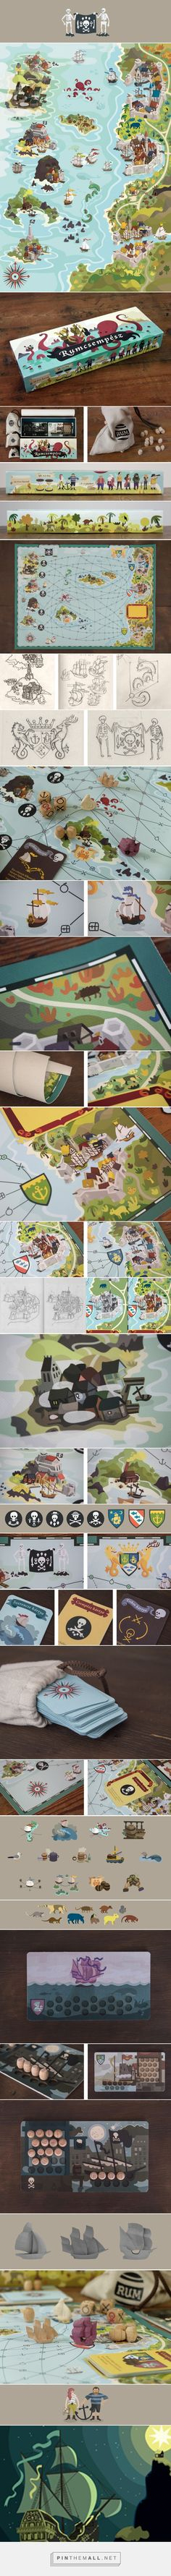 Rumsmuggler ☠ Board Game on Behance - created via http://pinthemall.net